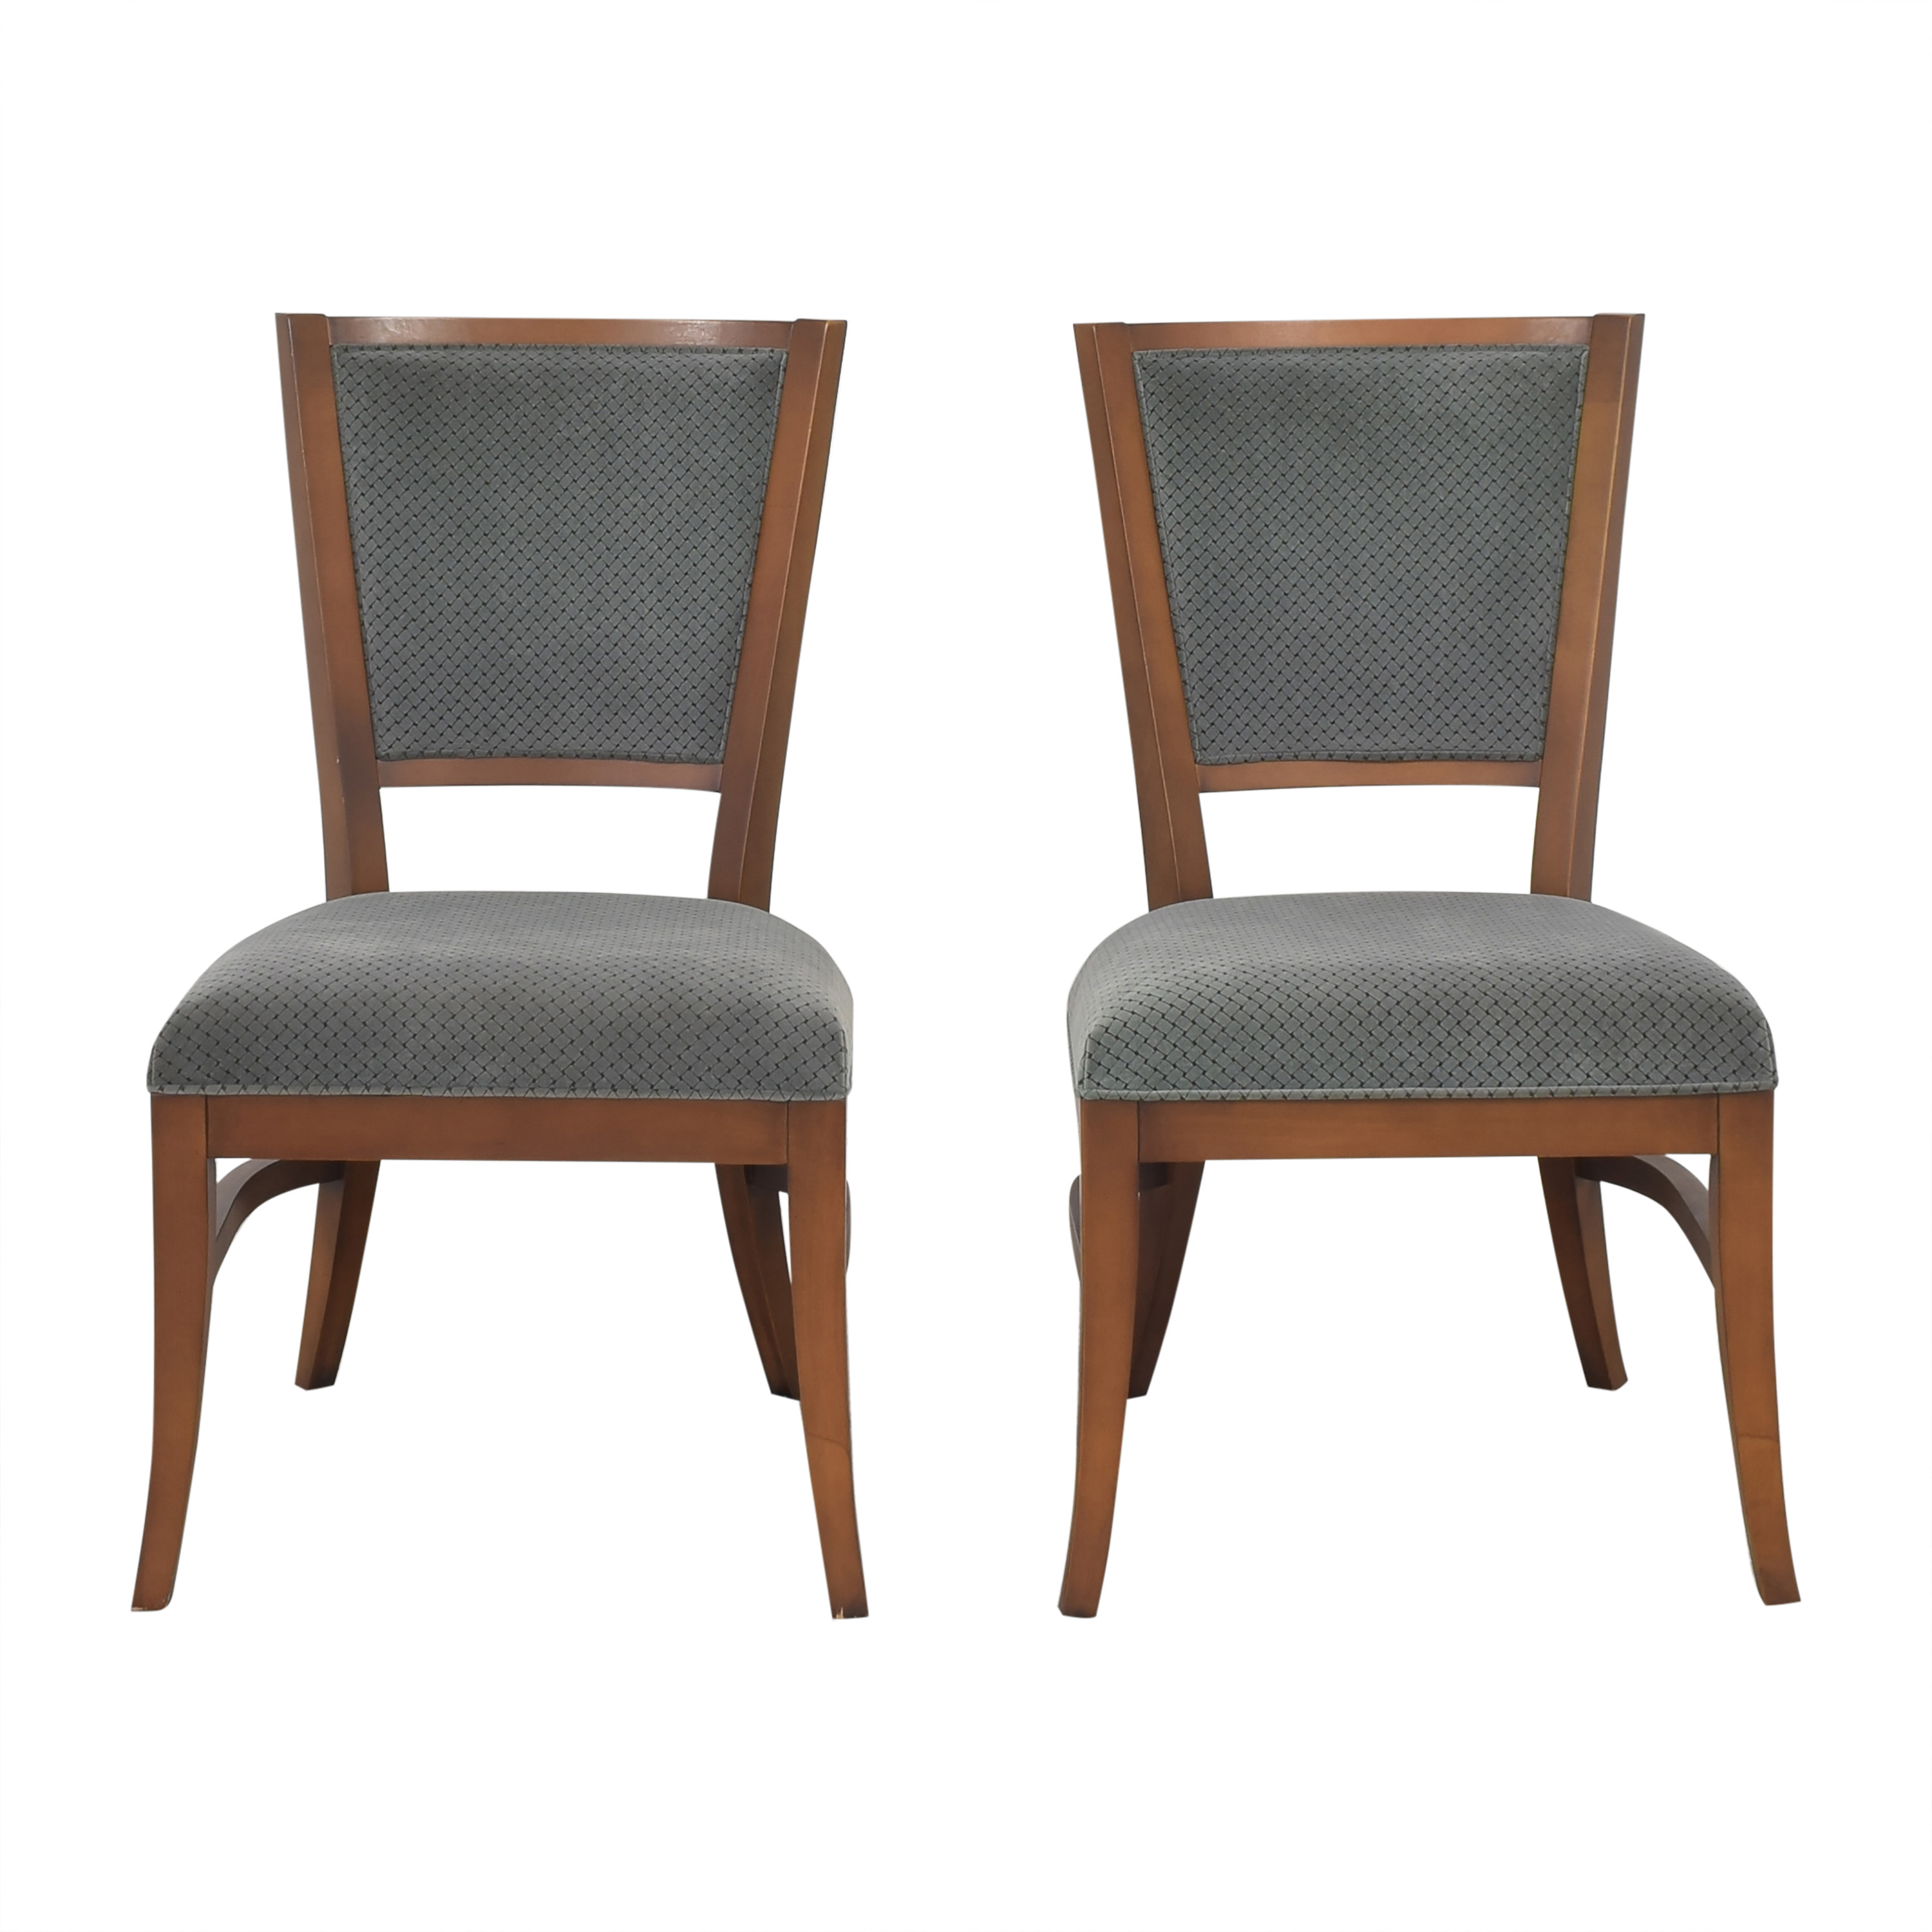 Hekman Furniture Hekman Furniture Octavio Side Chairs on sale